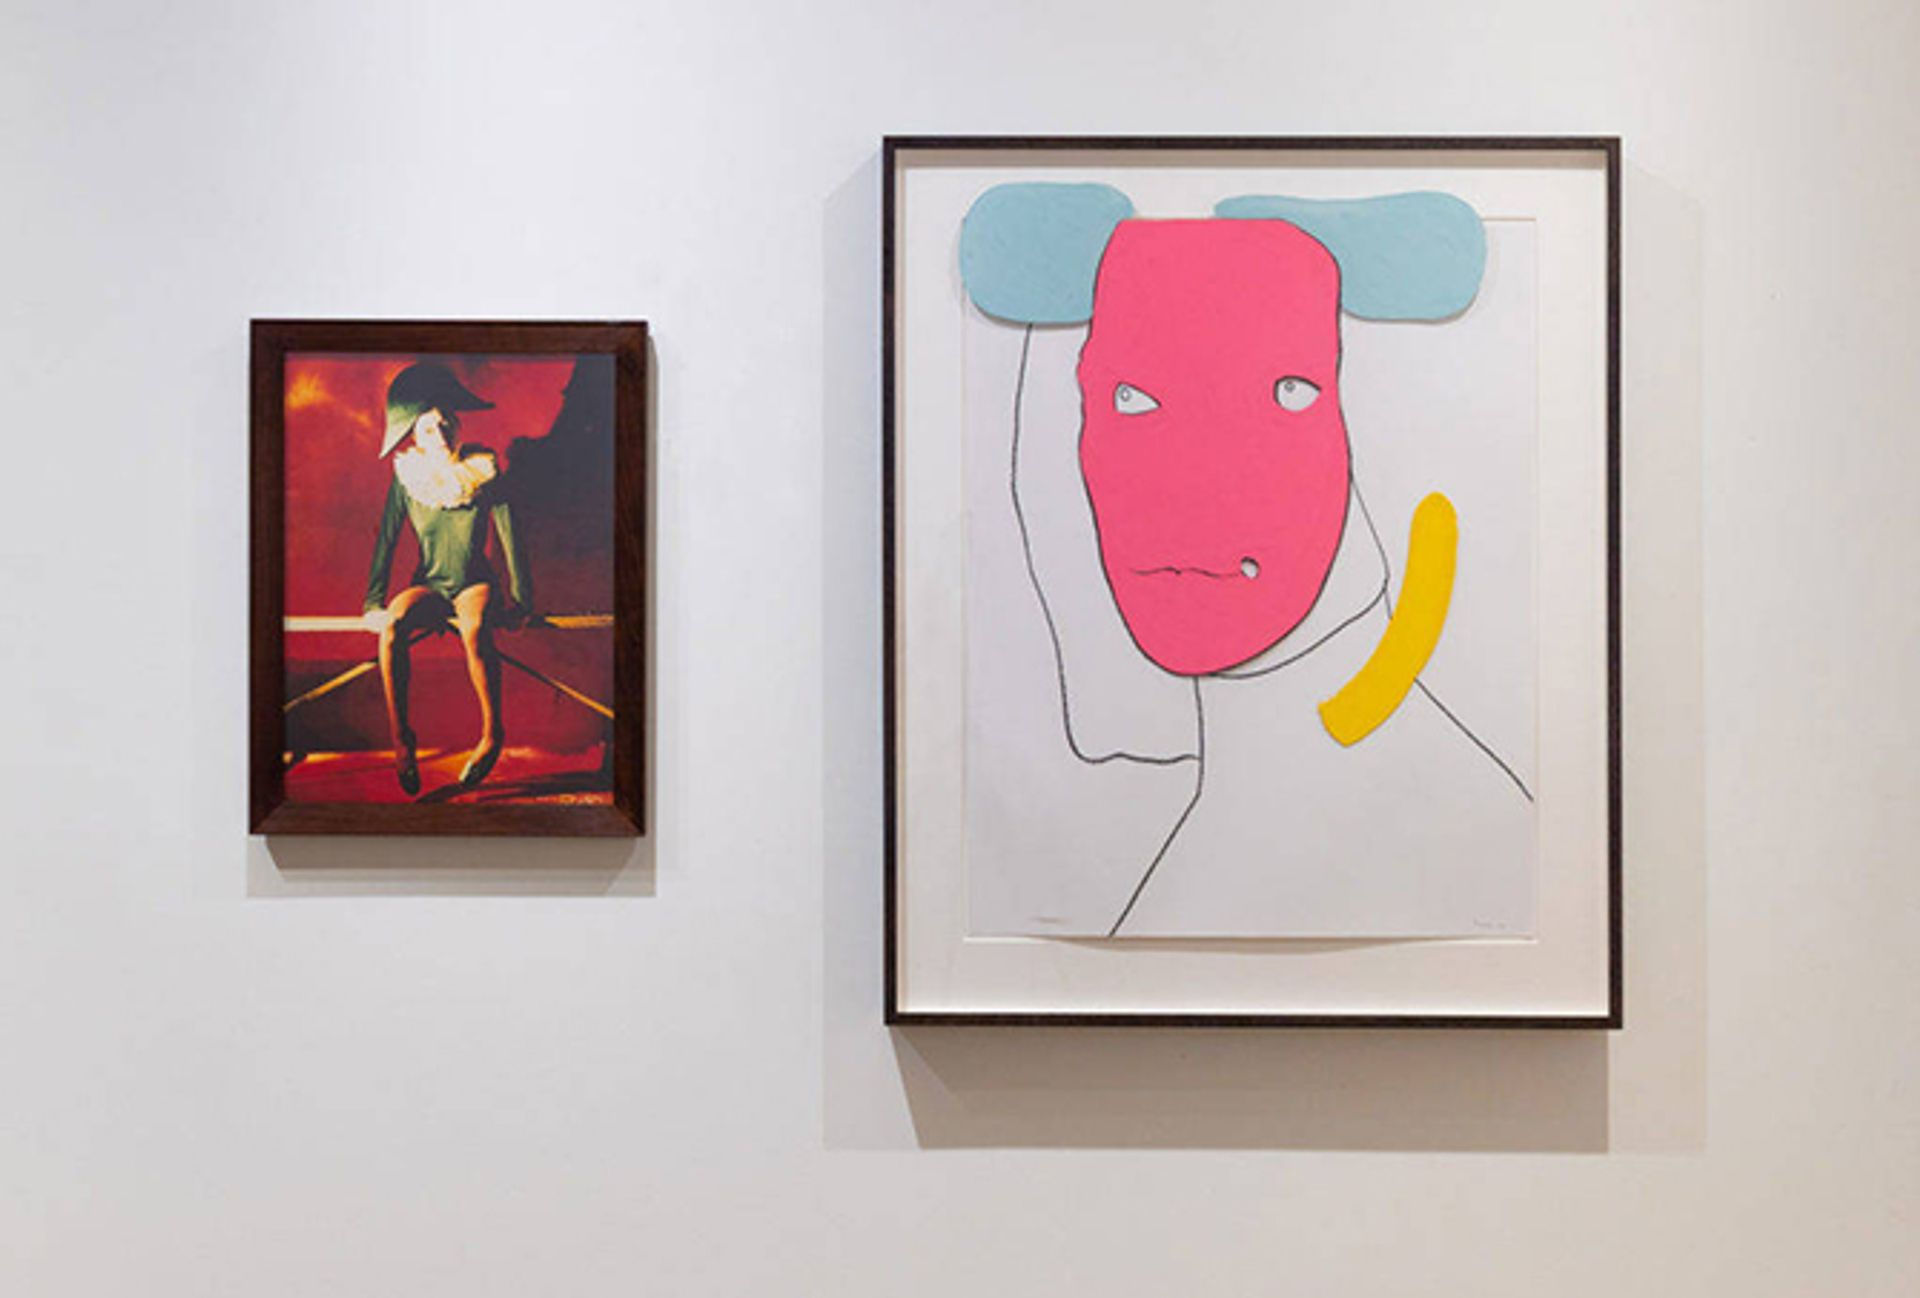 Georgie Hopton's Harlequin (Self-Portrait) (1999) will show alongside Gary Hume's'  The Flemish Bride  (2011) at the Armory Show in New York © Courtesy of the artists and Lyndsey Ingram Gallery